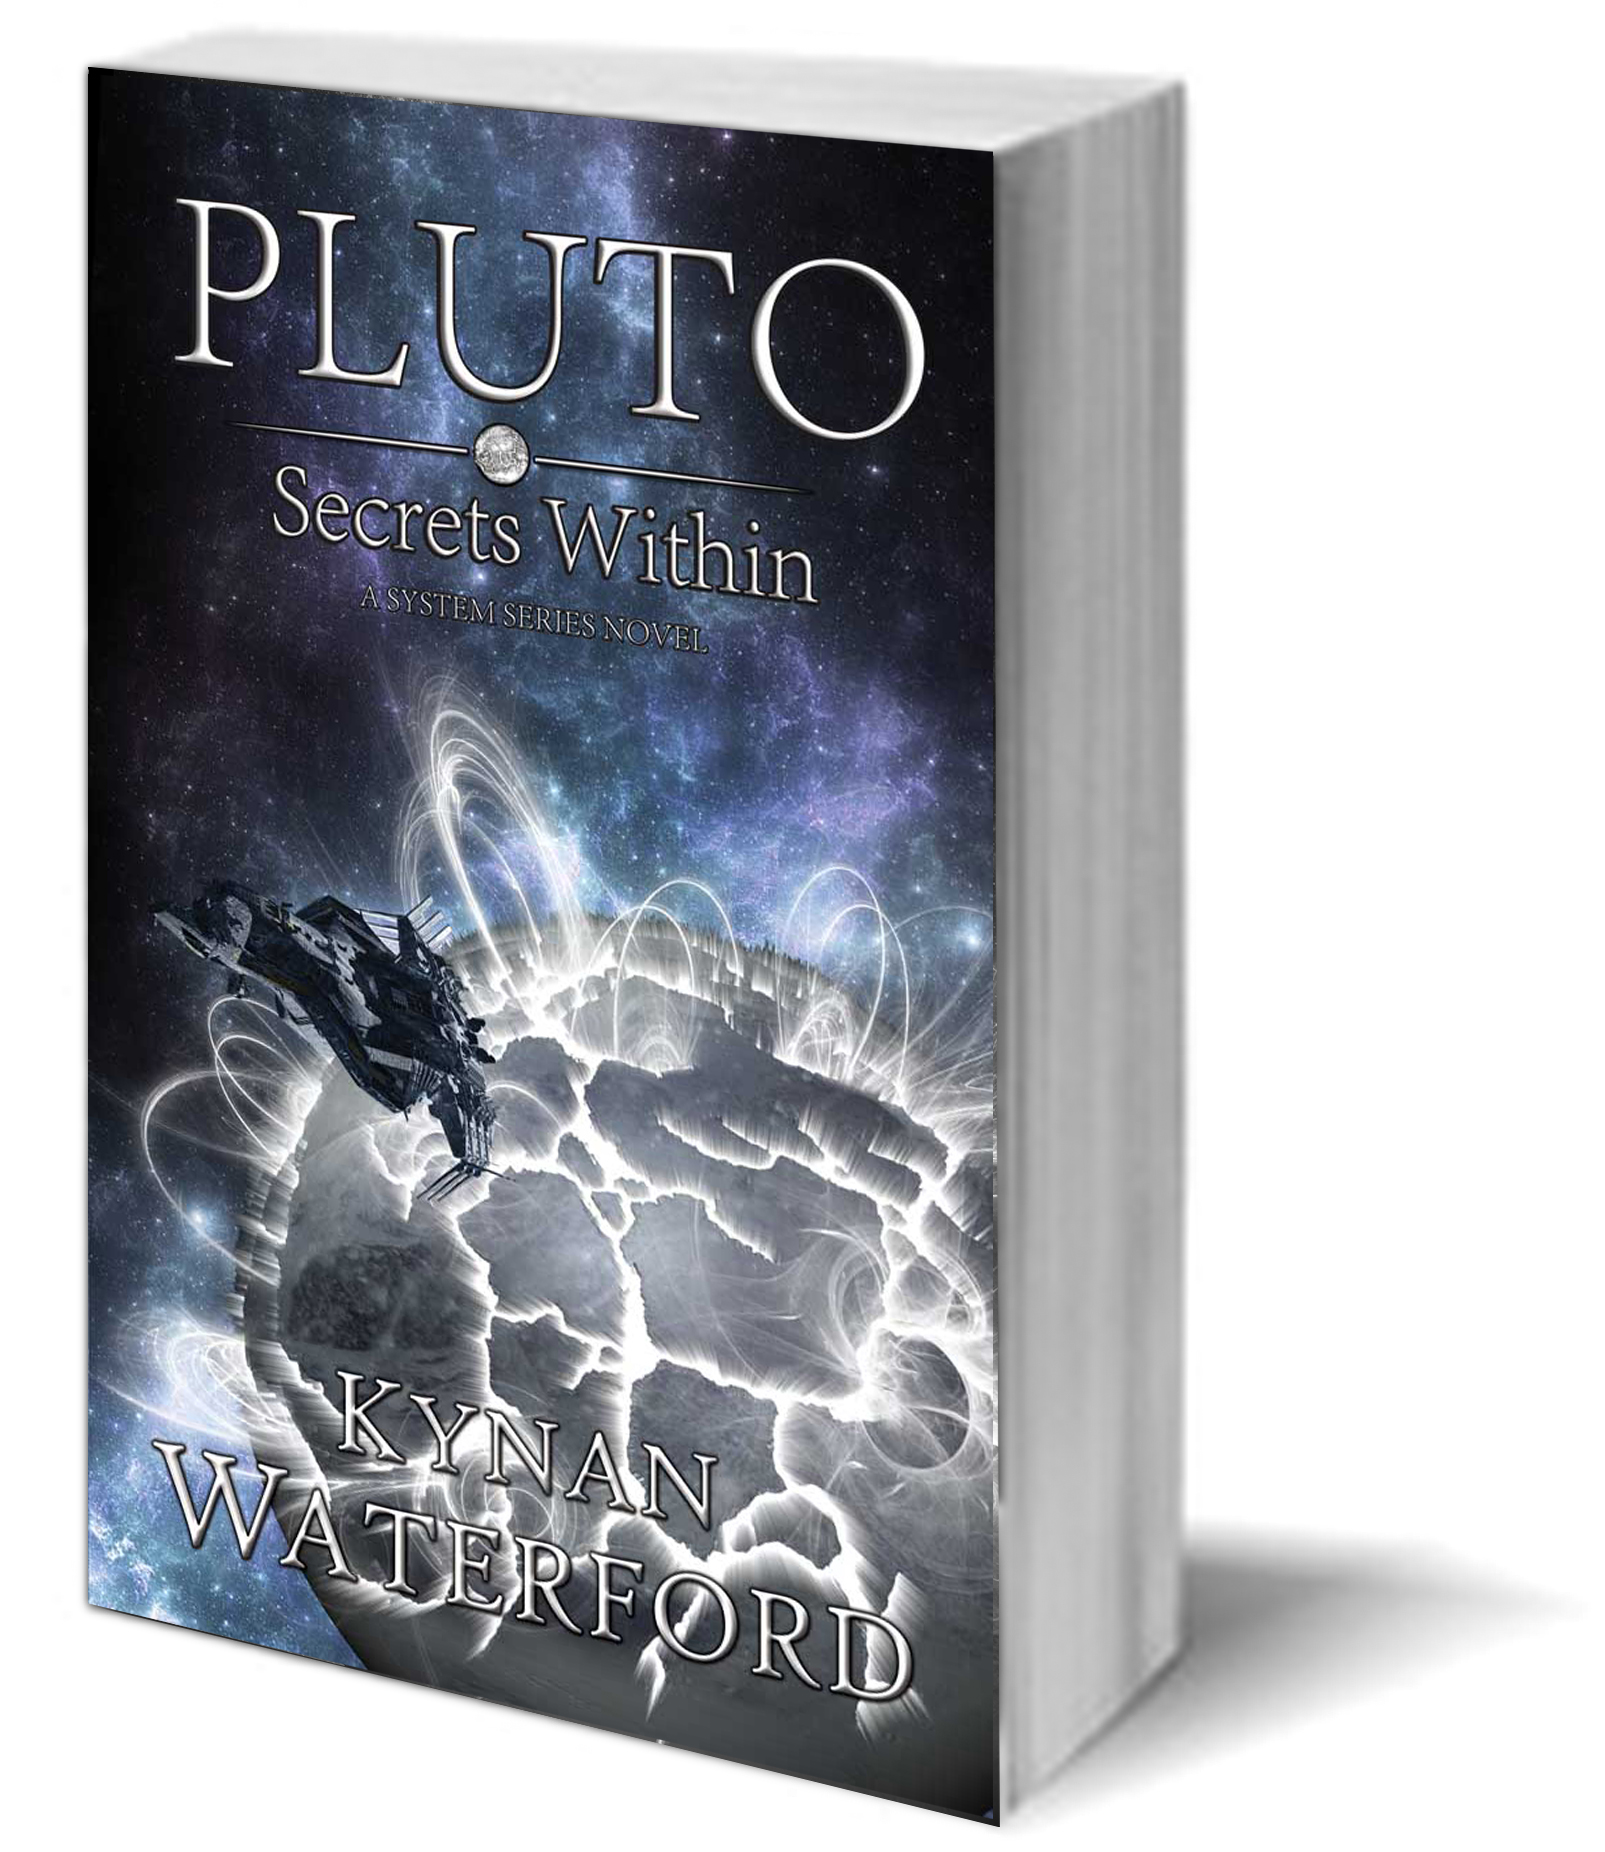 Paperback_Pluto_Secrets_Within.jpg